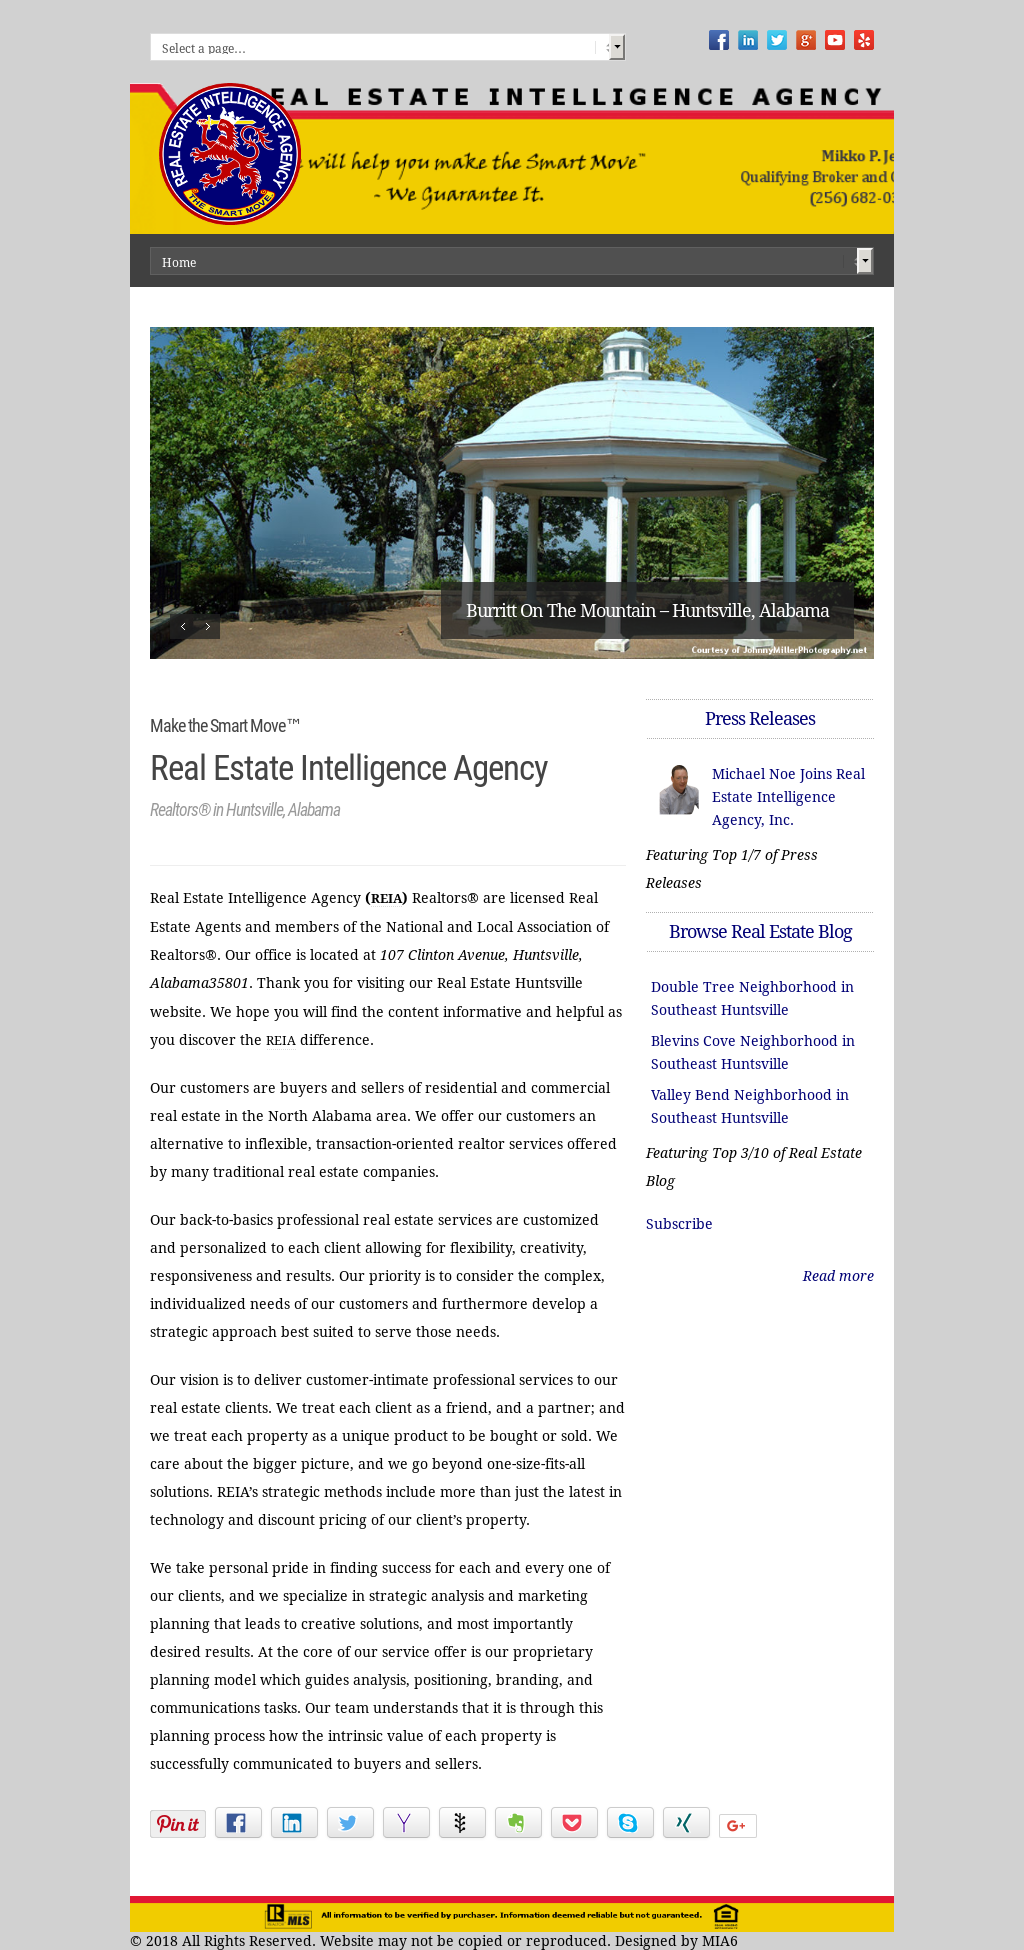 Real Estate Intelligence Agency Competitors, Revenue and